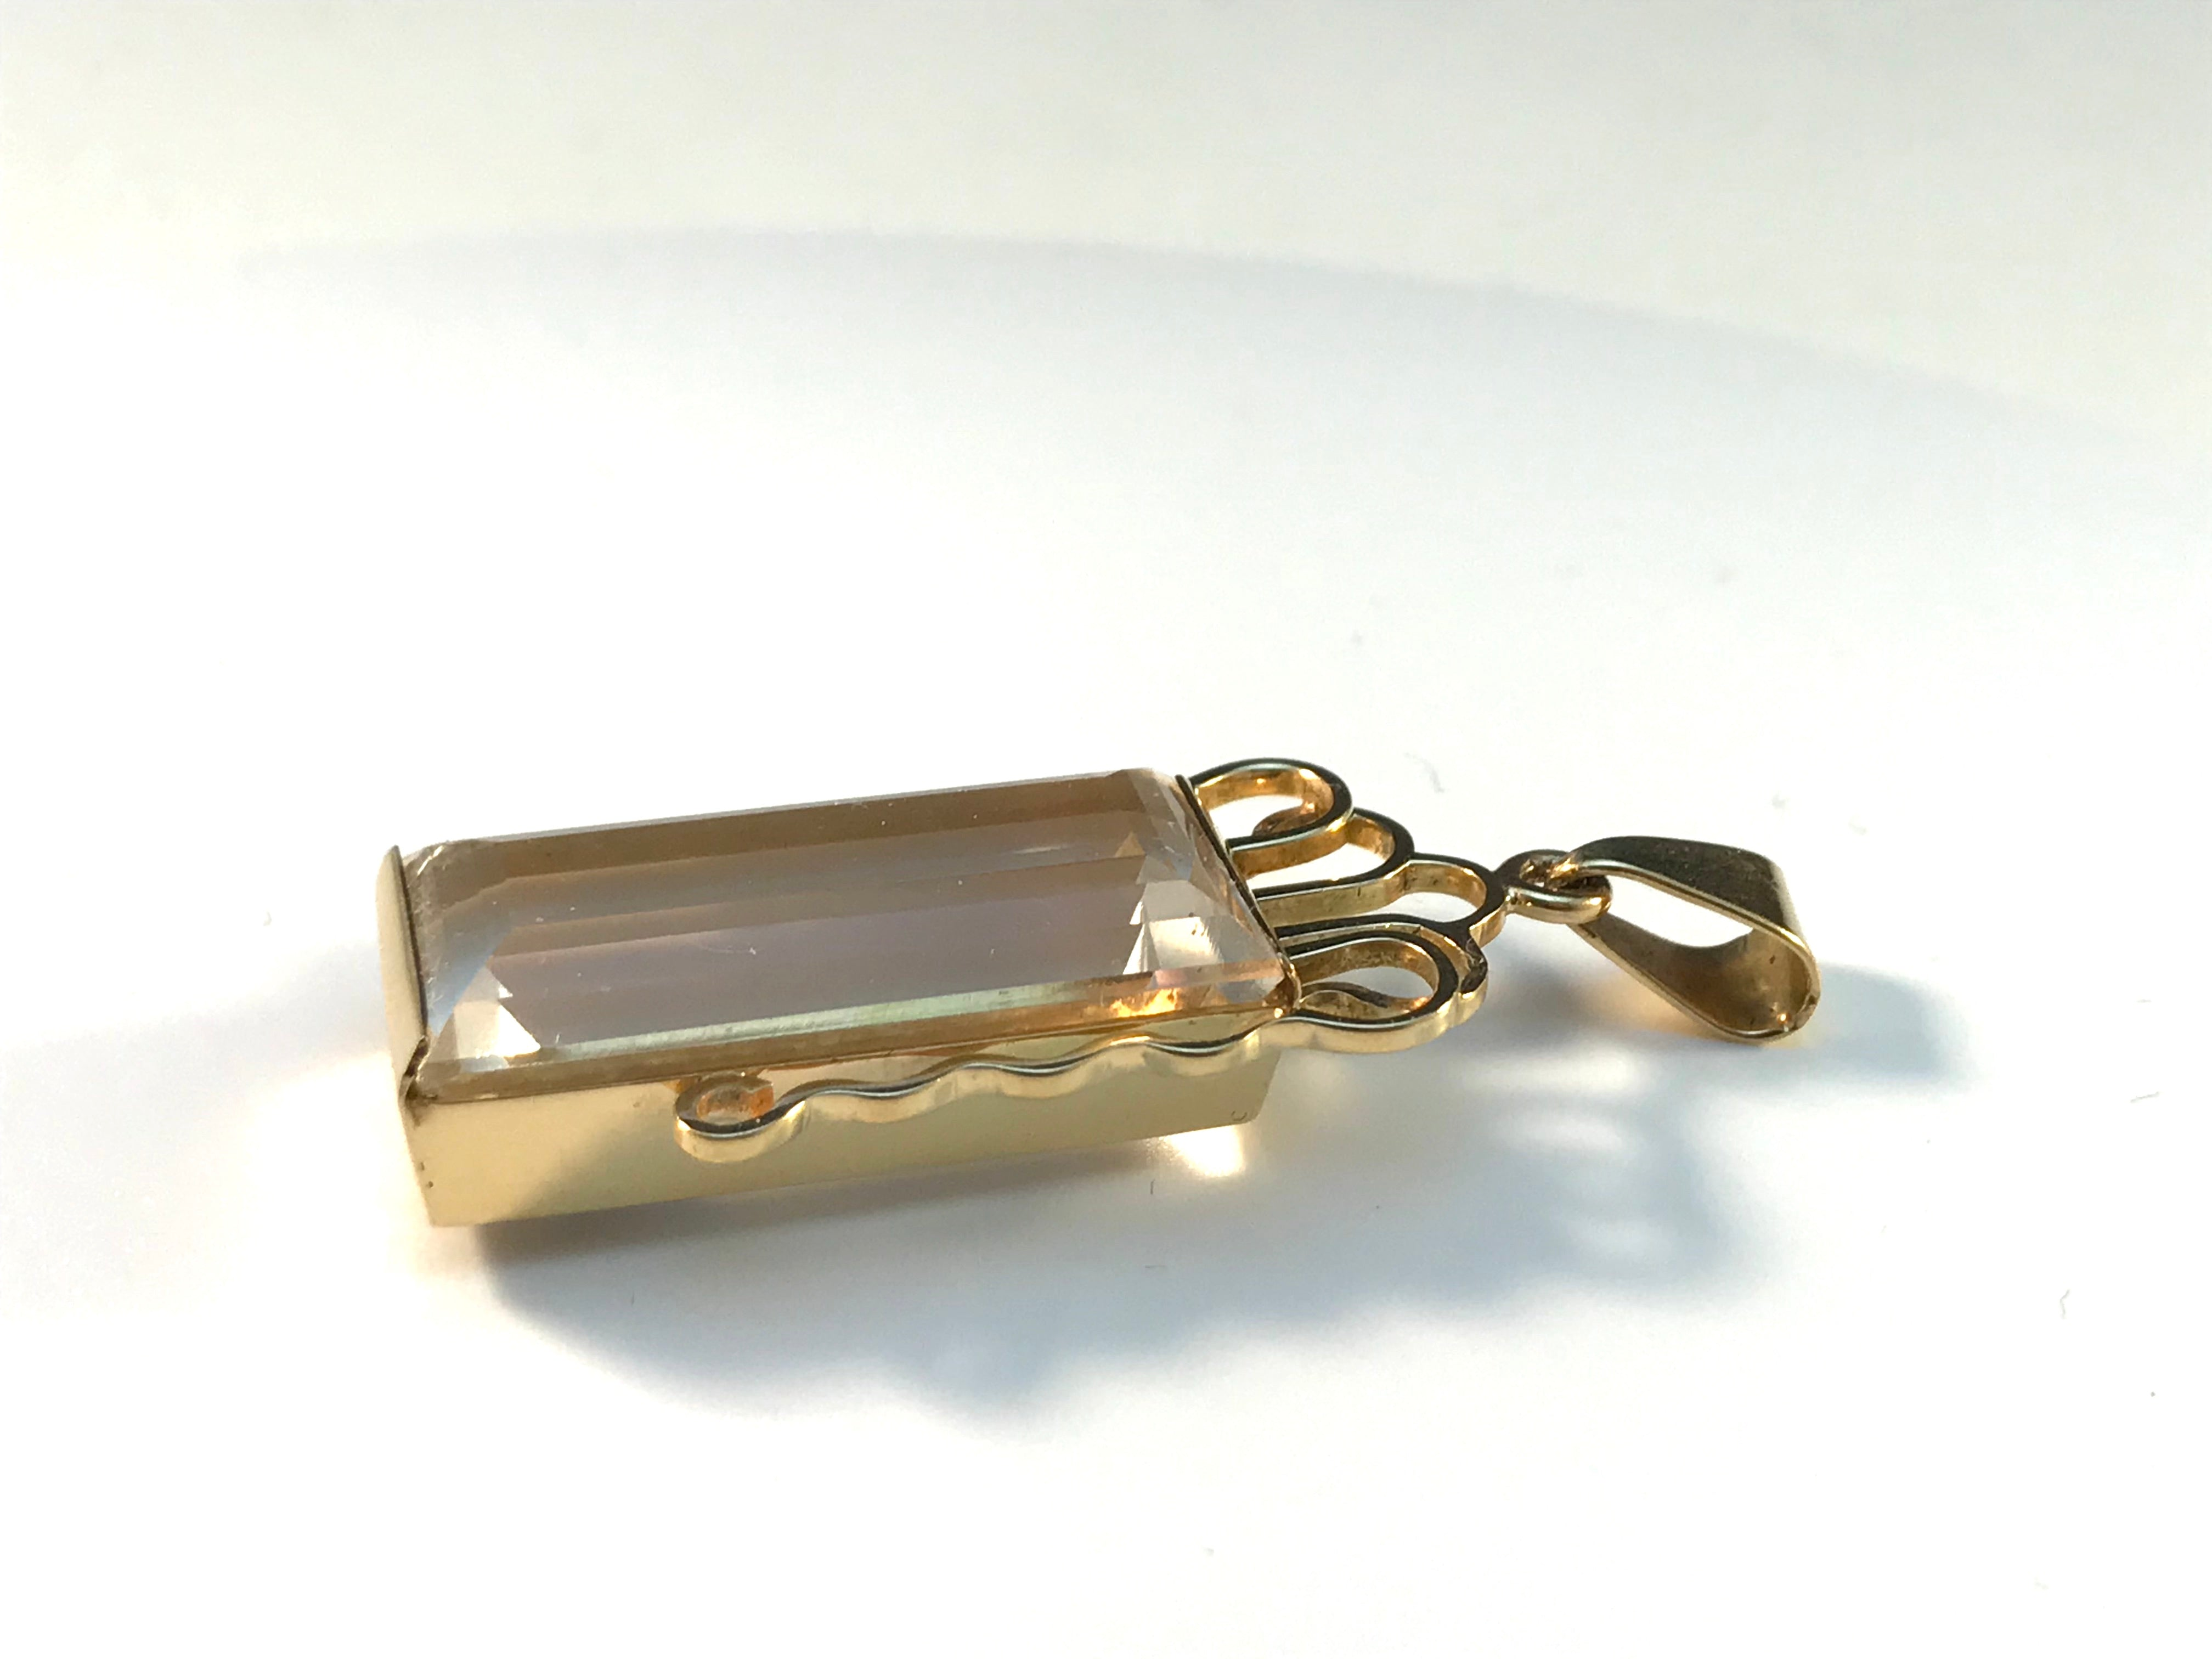 Olof Pettersson, Stockholm year 1977, 18k Gold Rock Crystal Pendant.